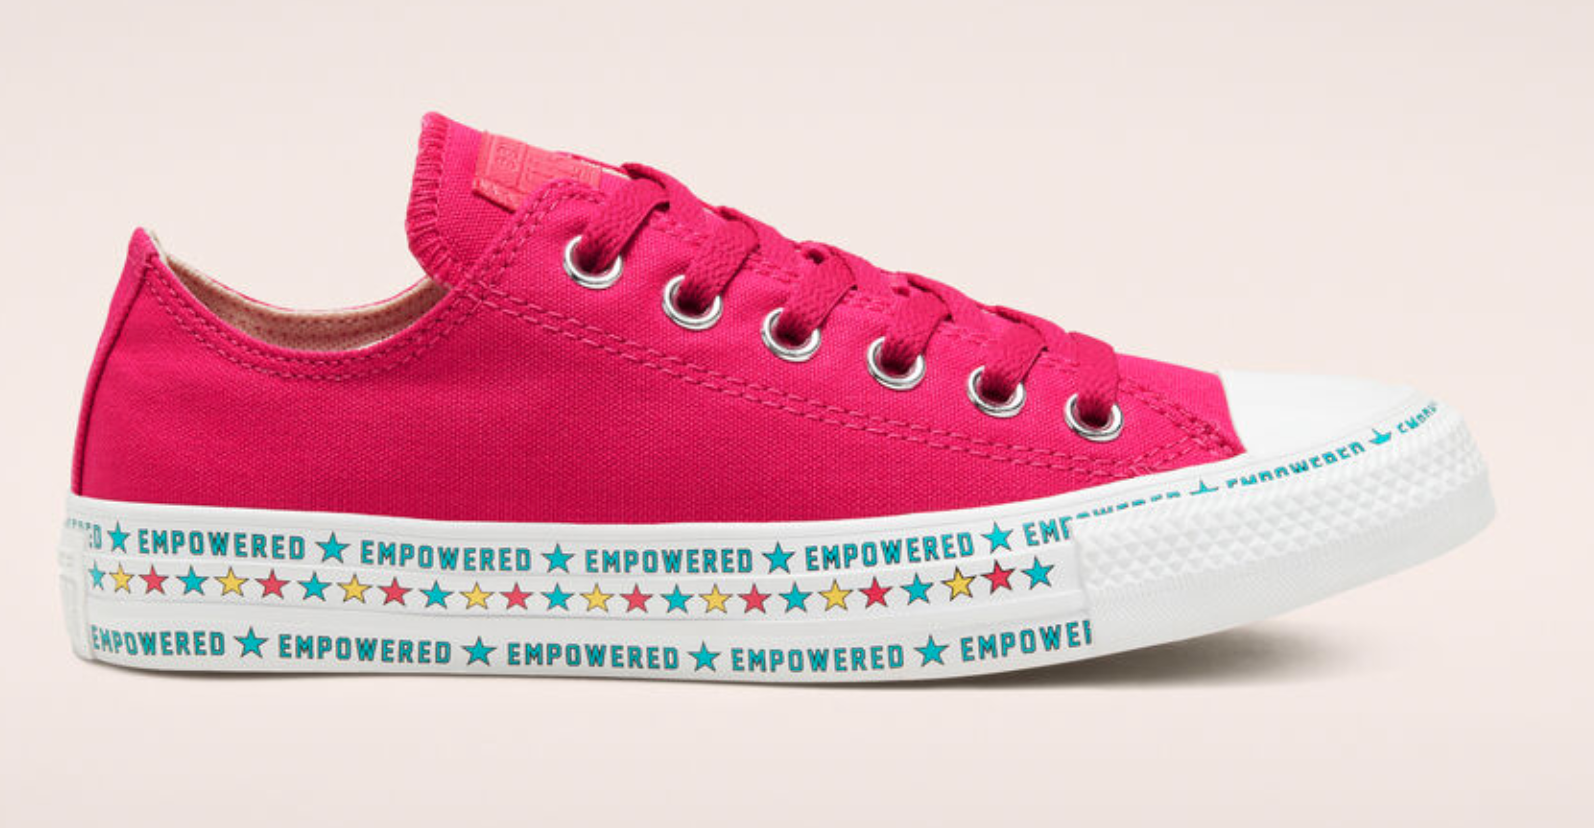 chuck taylor empowered